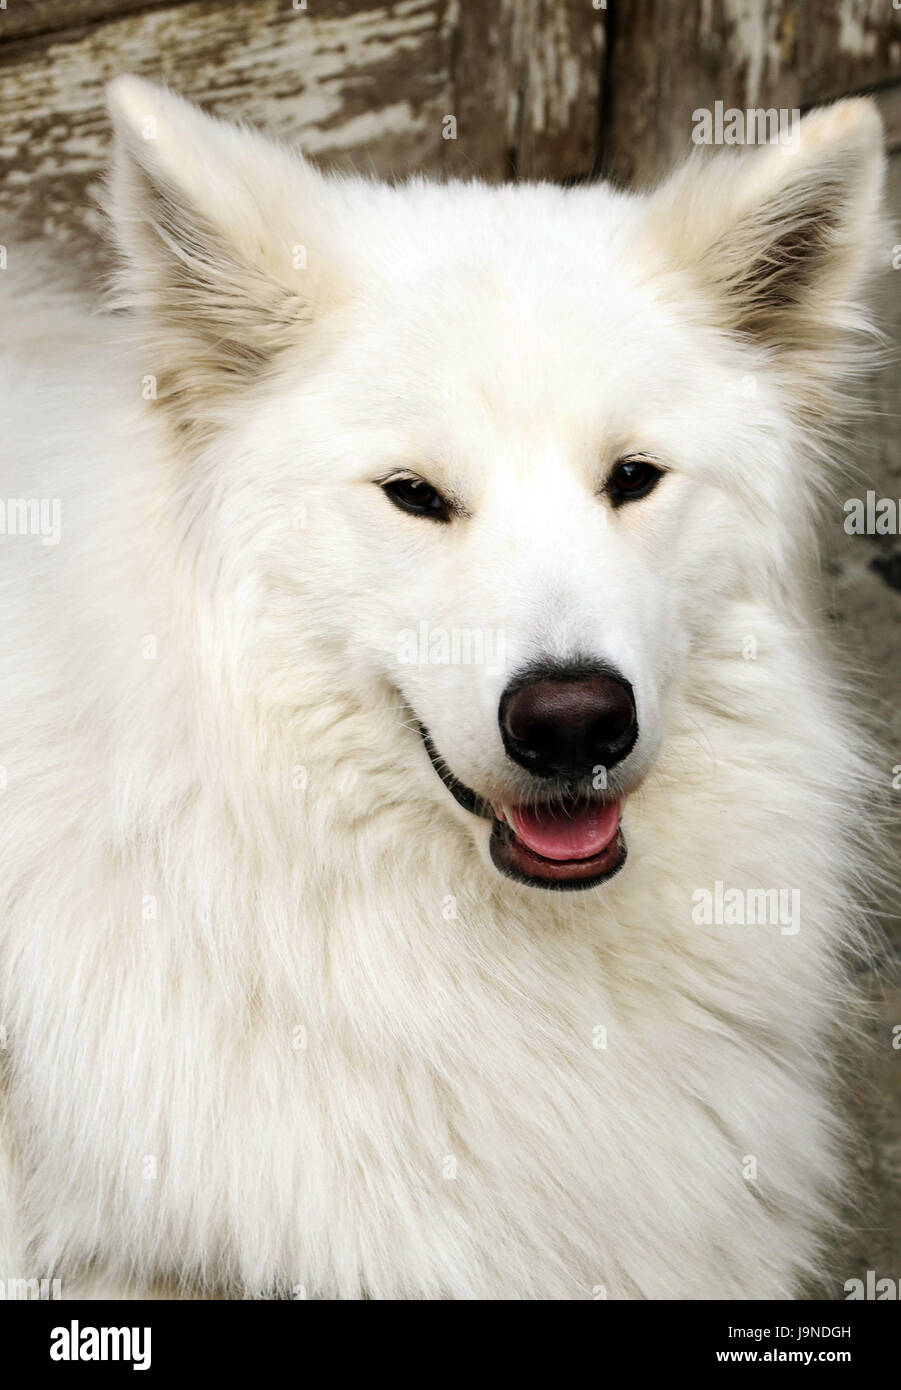 White dog against wooden door - Stock Image